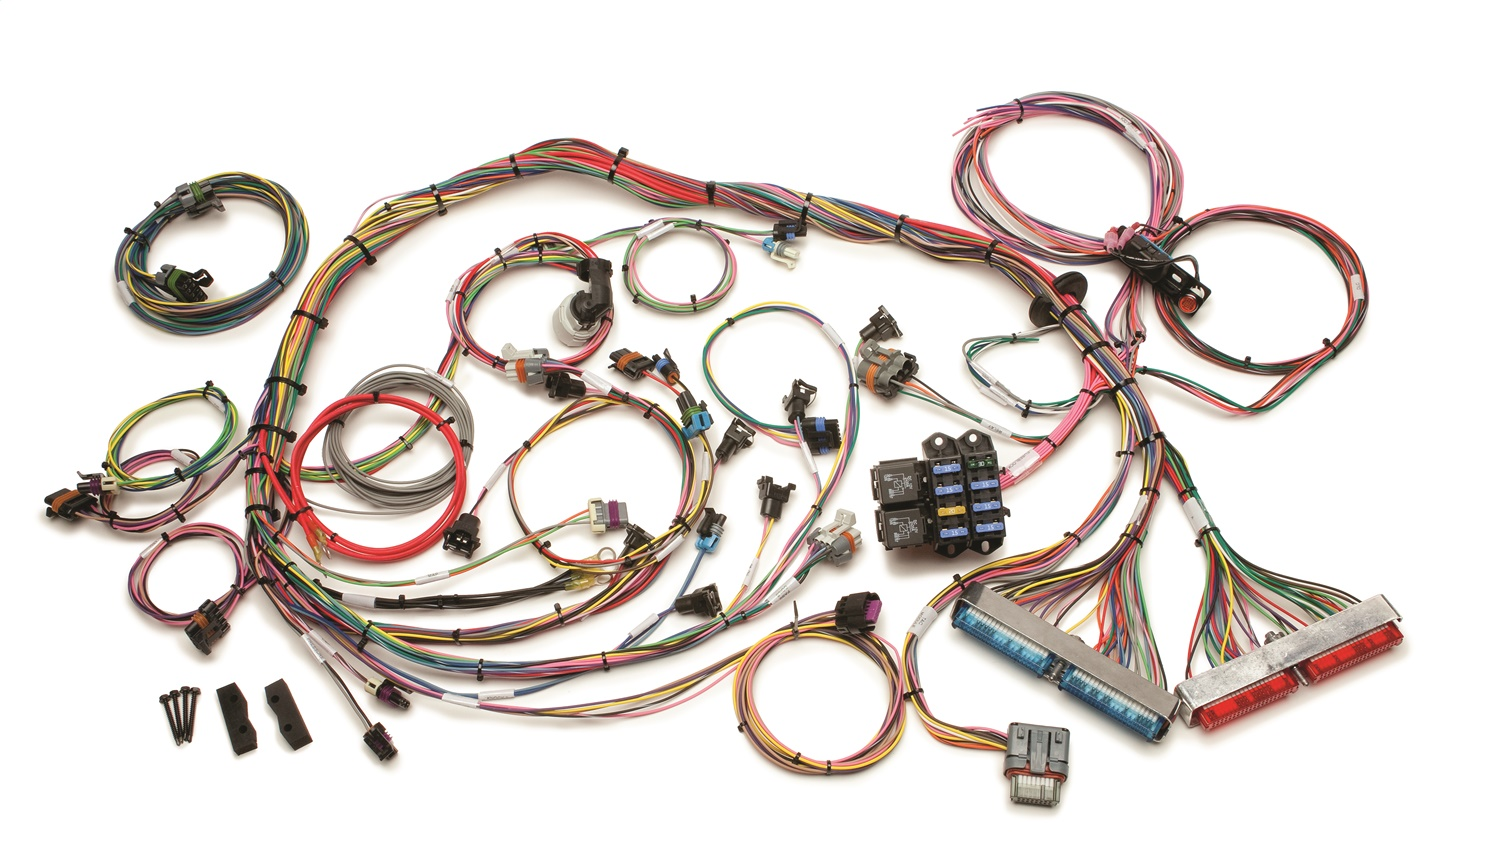 Painless Wiring 60522 Fuel Injection Wiring Harness